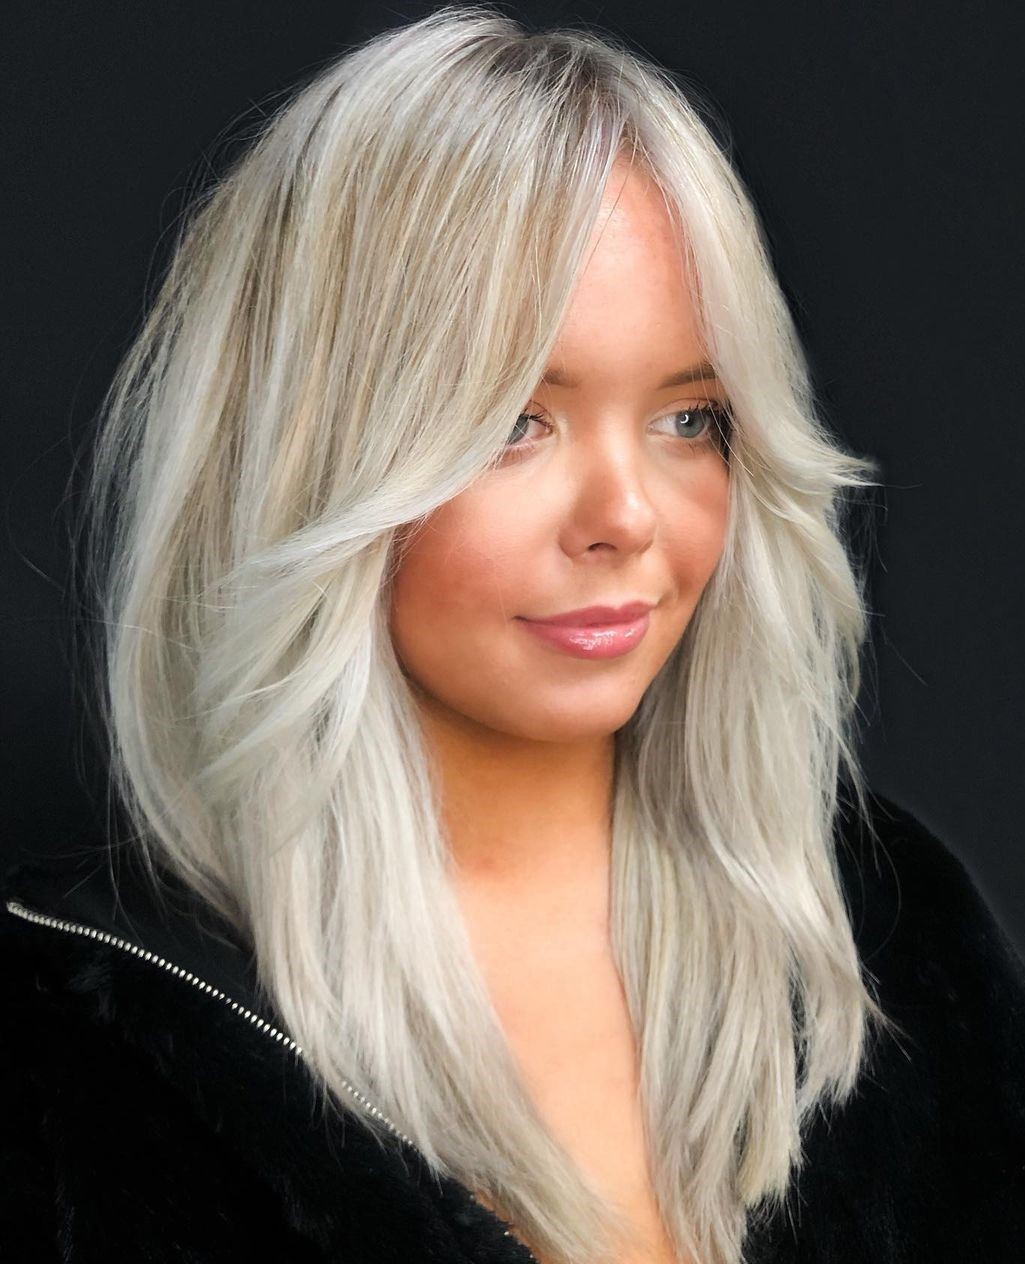 Medium Length Hair for Fuller Face and Double Chins